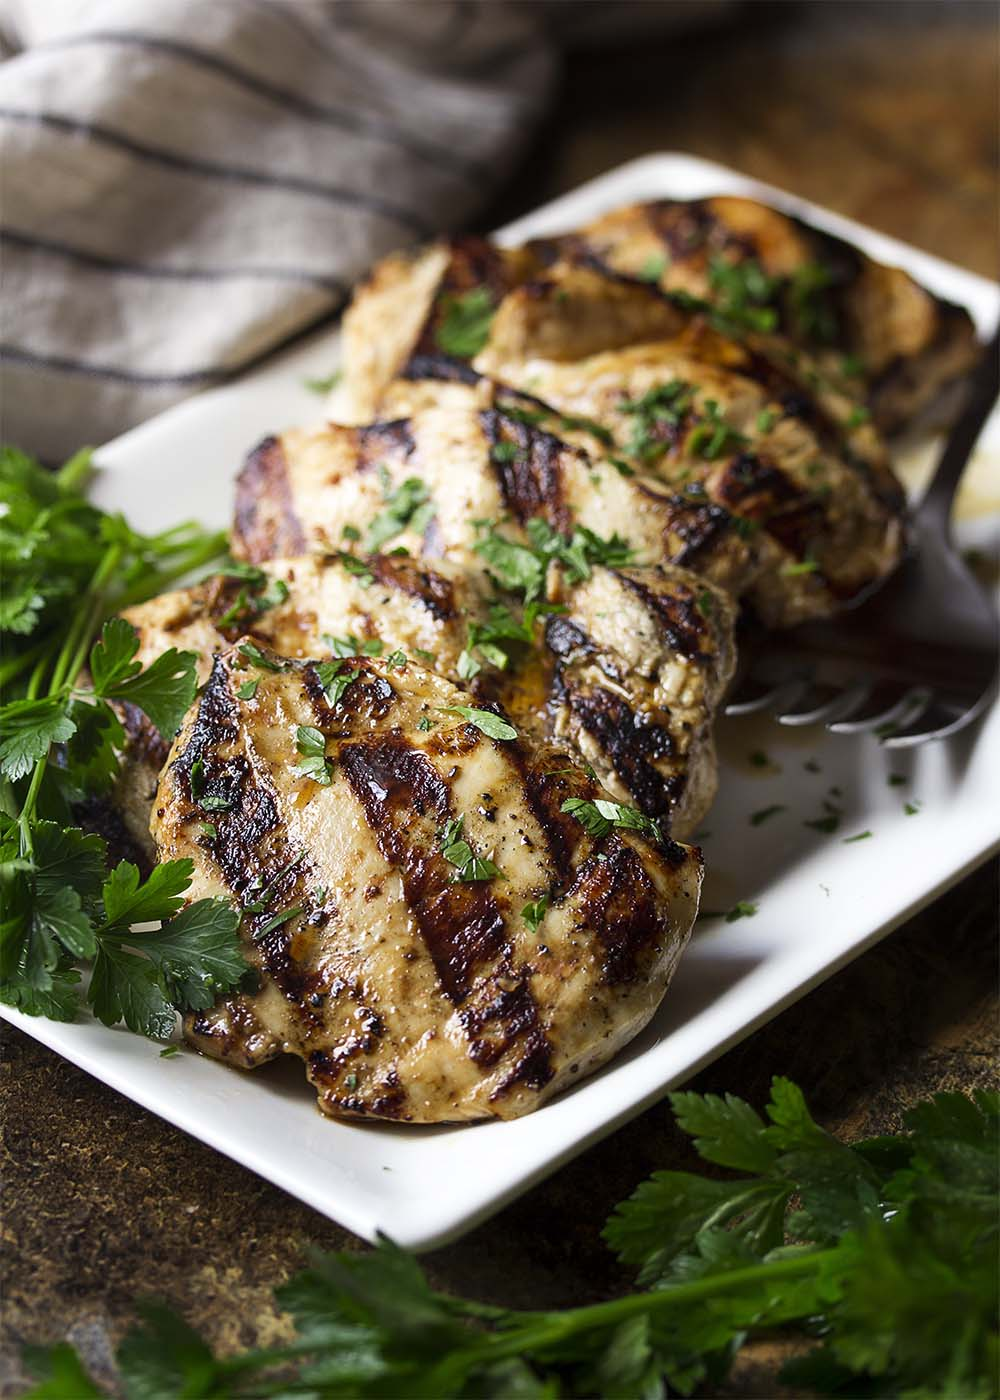 A platter of juicy and tender grilled chicken breast which has been marinated in balsamic dressing.